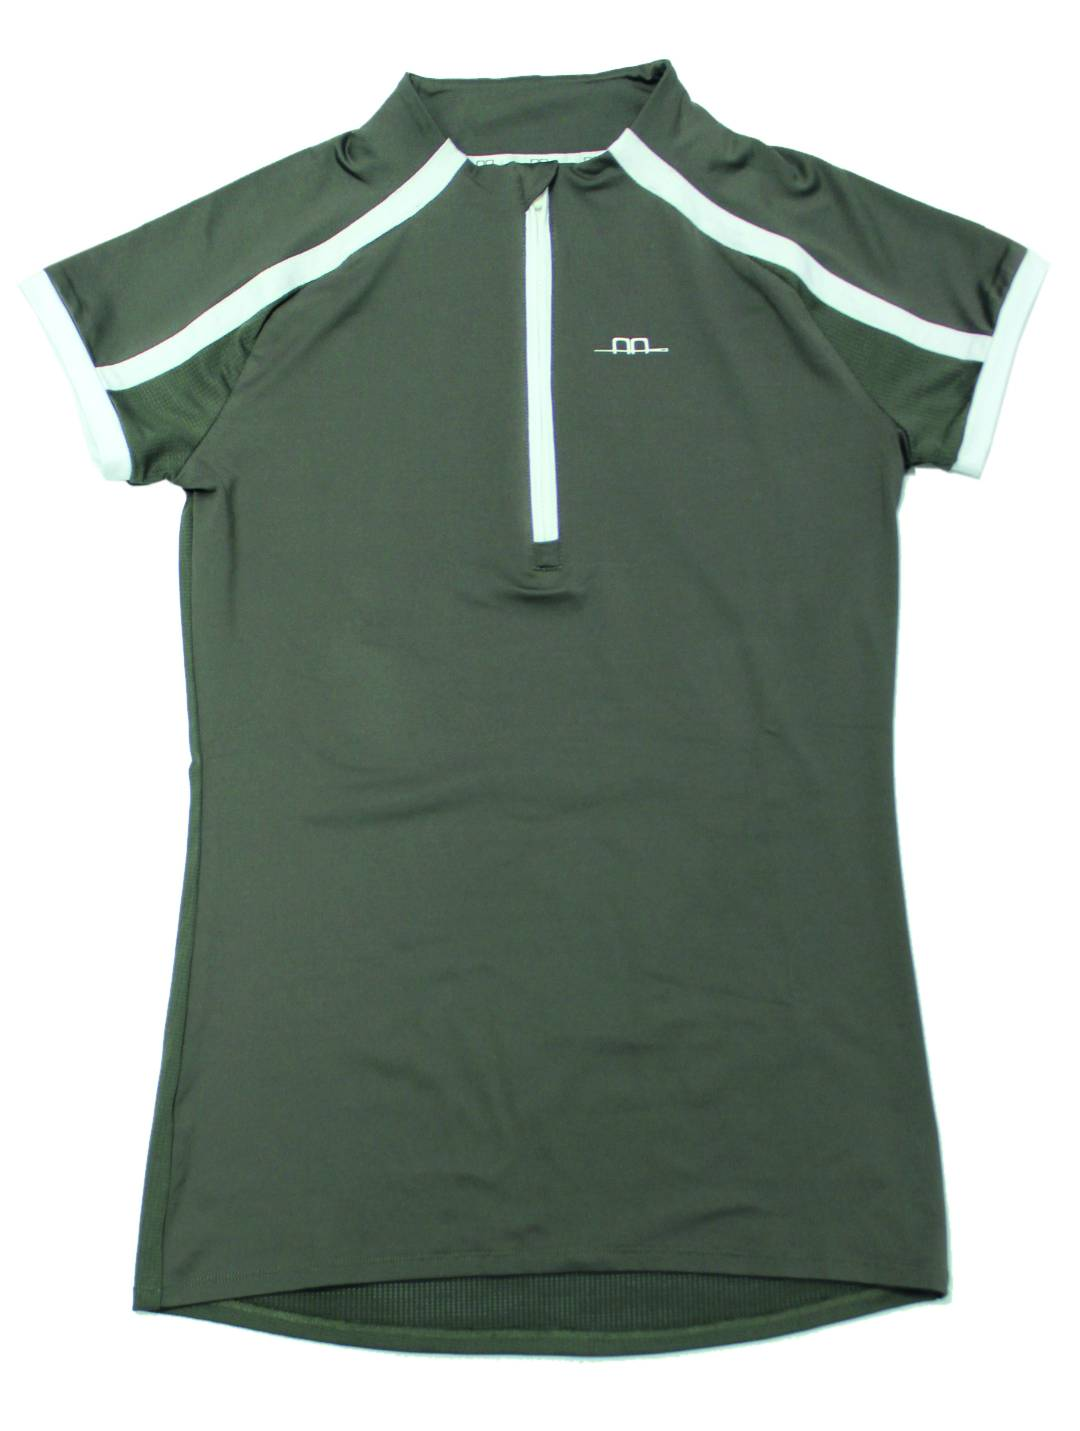 Alessandro Albanese Pula Short Sleeve Technical Top Ladies